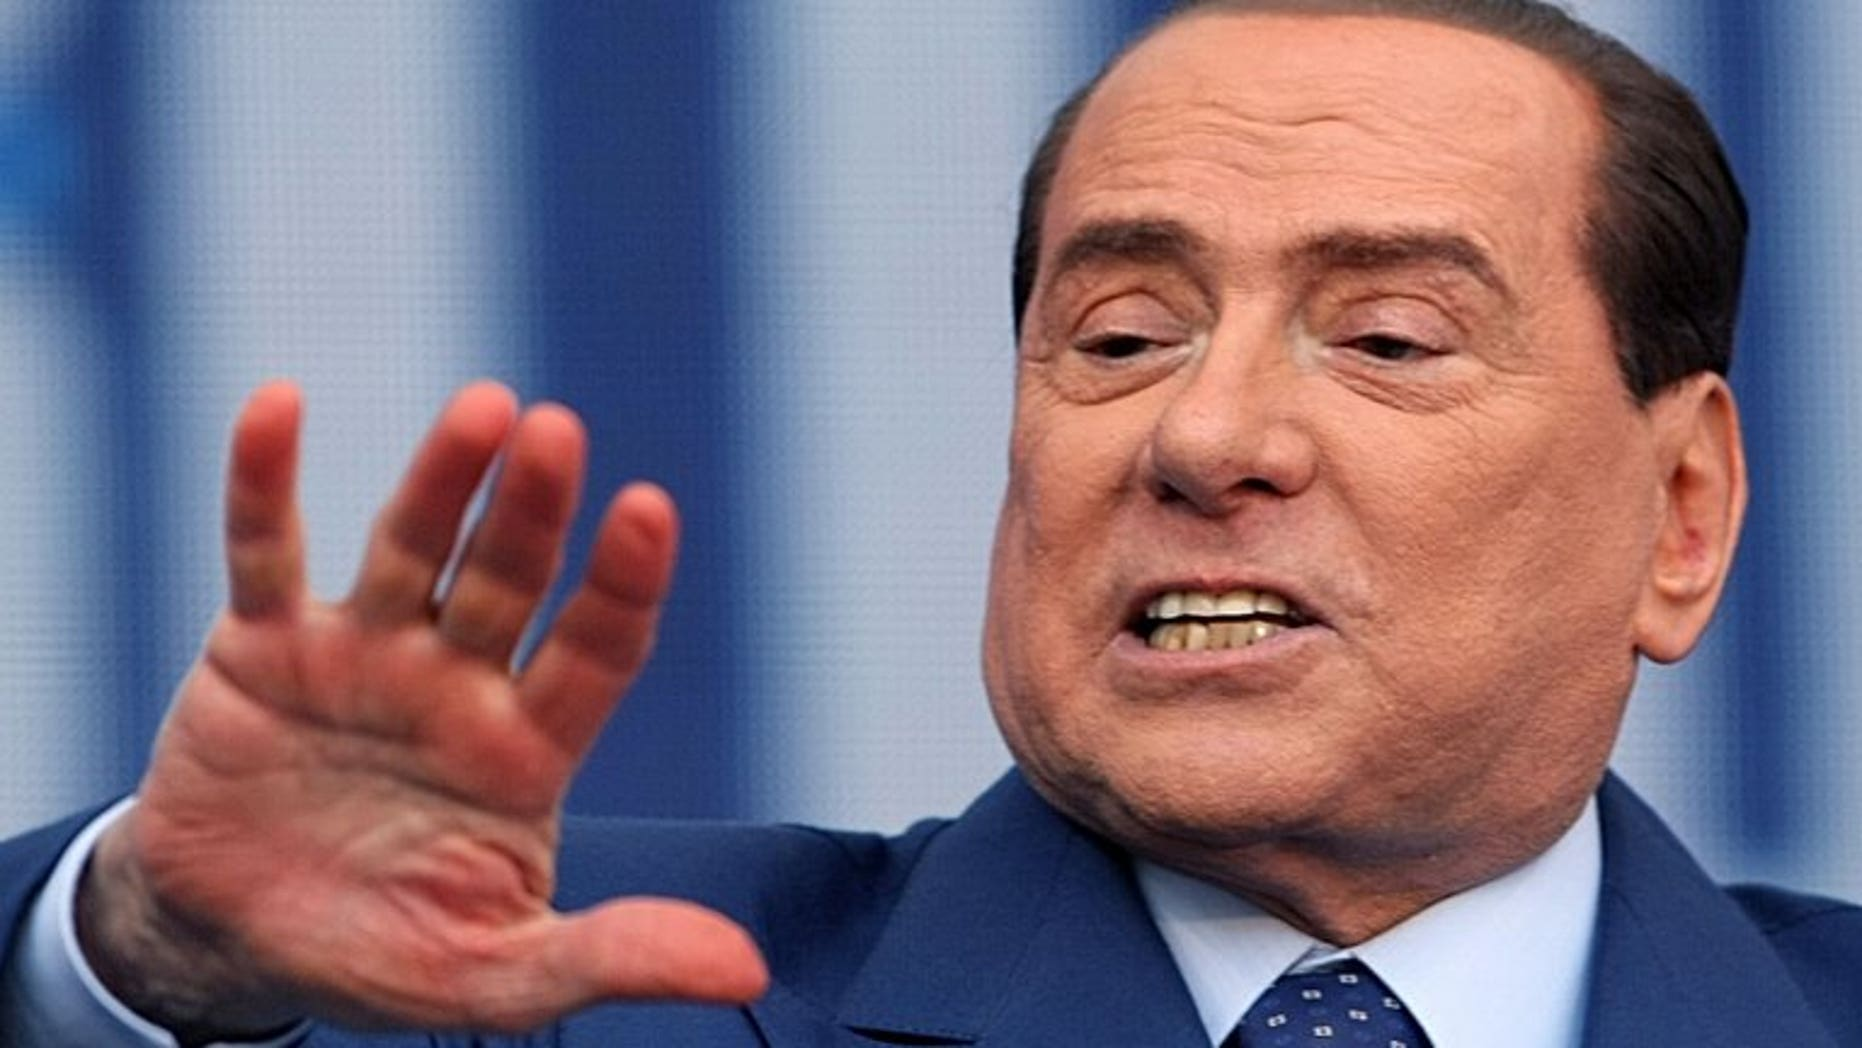 Former Italian premier Silvio Berlusconi delivers a speech during a campaign rally in Bari, on April, 13, 2013. Berlusconi's lawyer said he believed the former premier would request -- and could be granted -- a presidential pardon following his tax fraud conviction, sparking a heated debate in Italy.